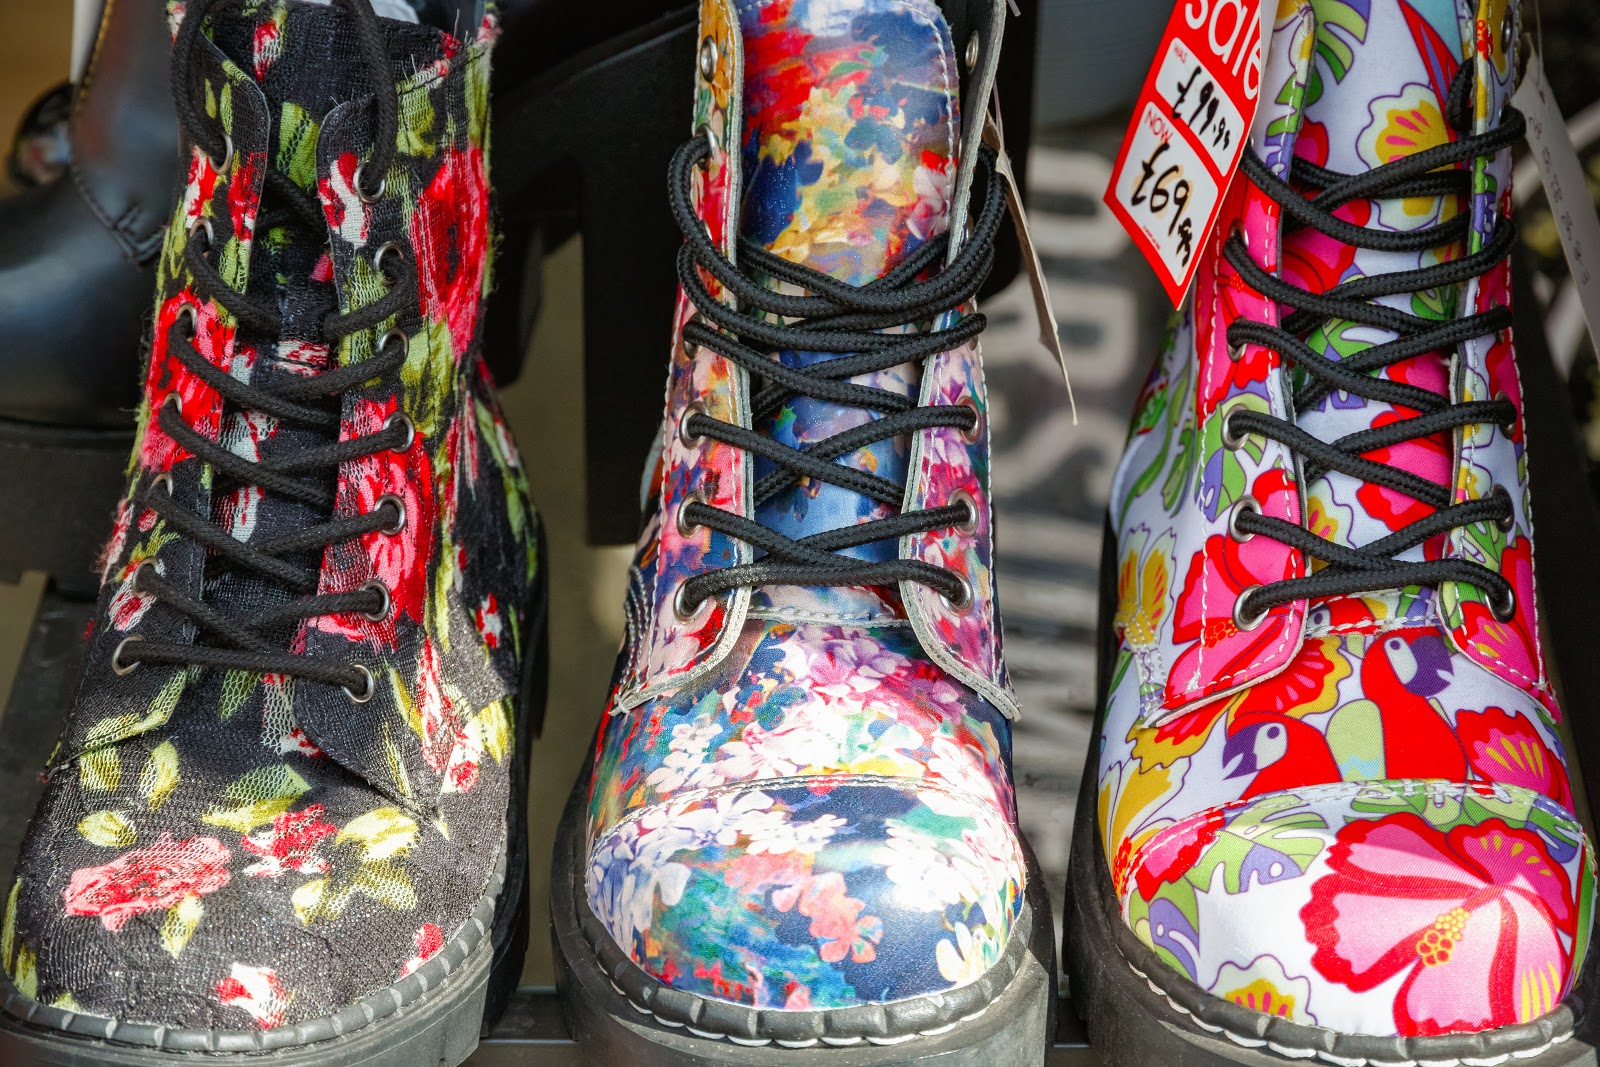 Floral punk boots at one of the vendors at Camden Market in London